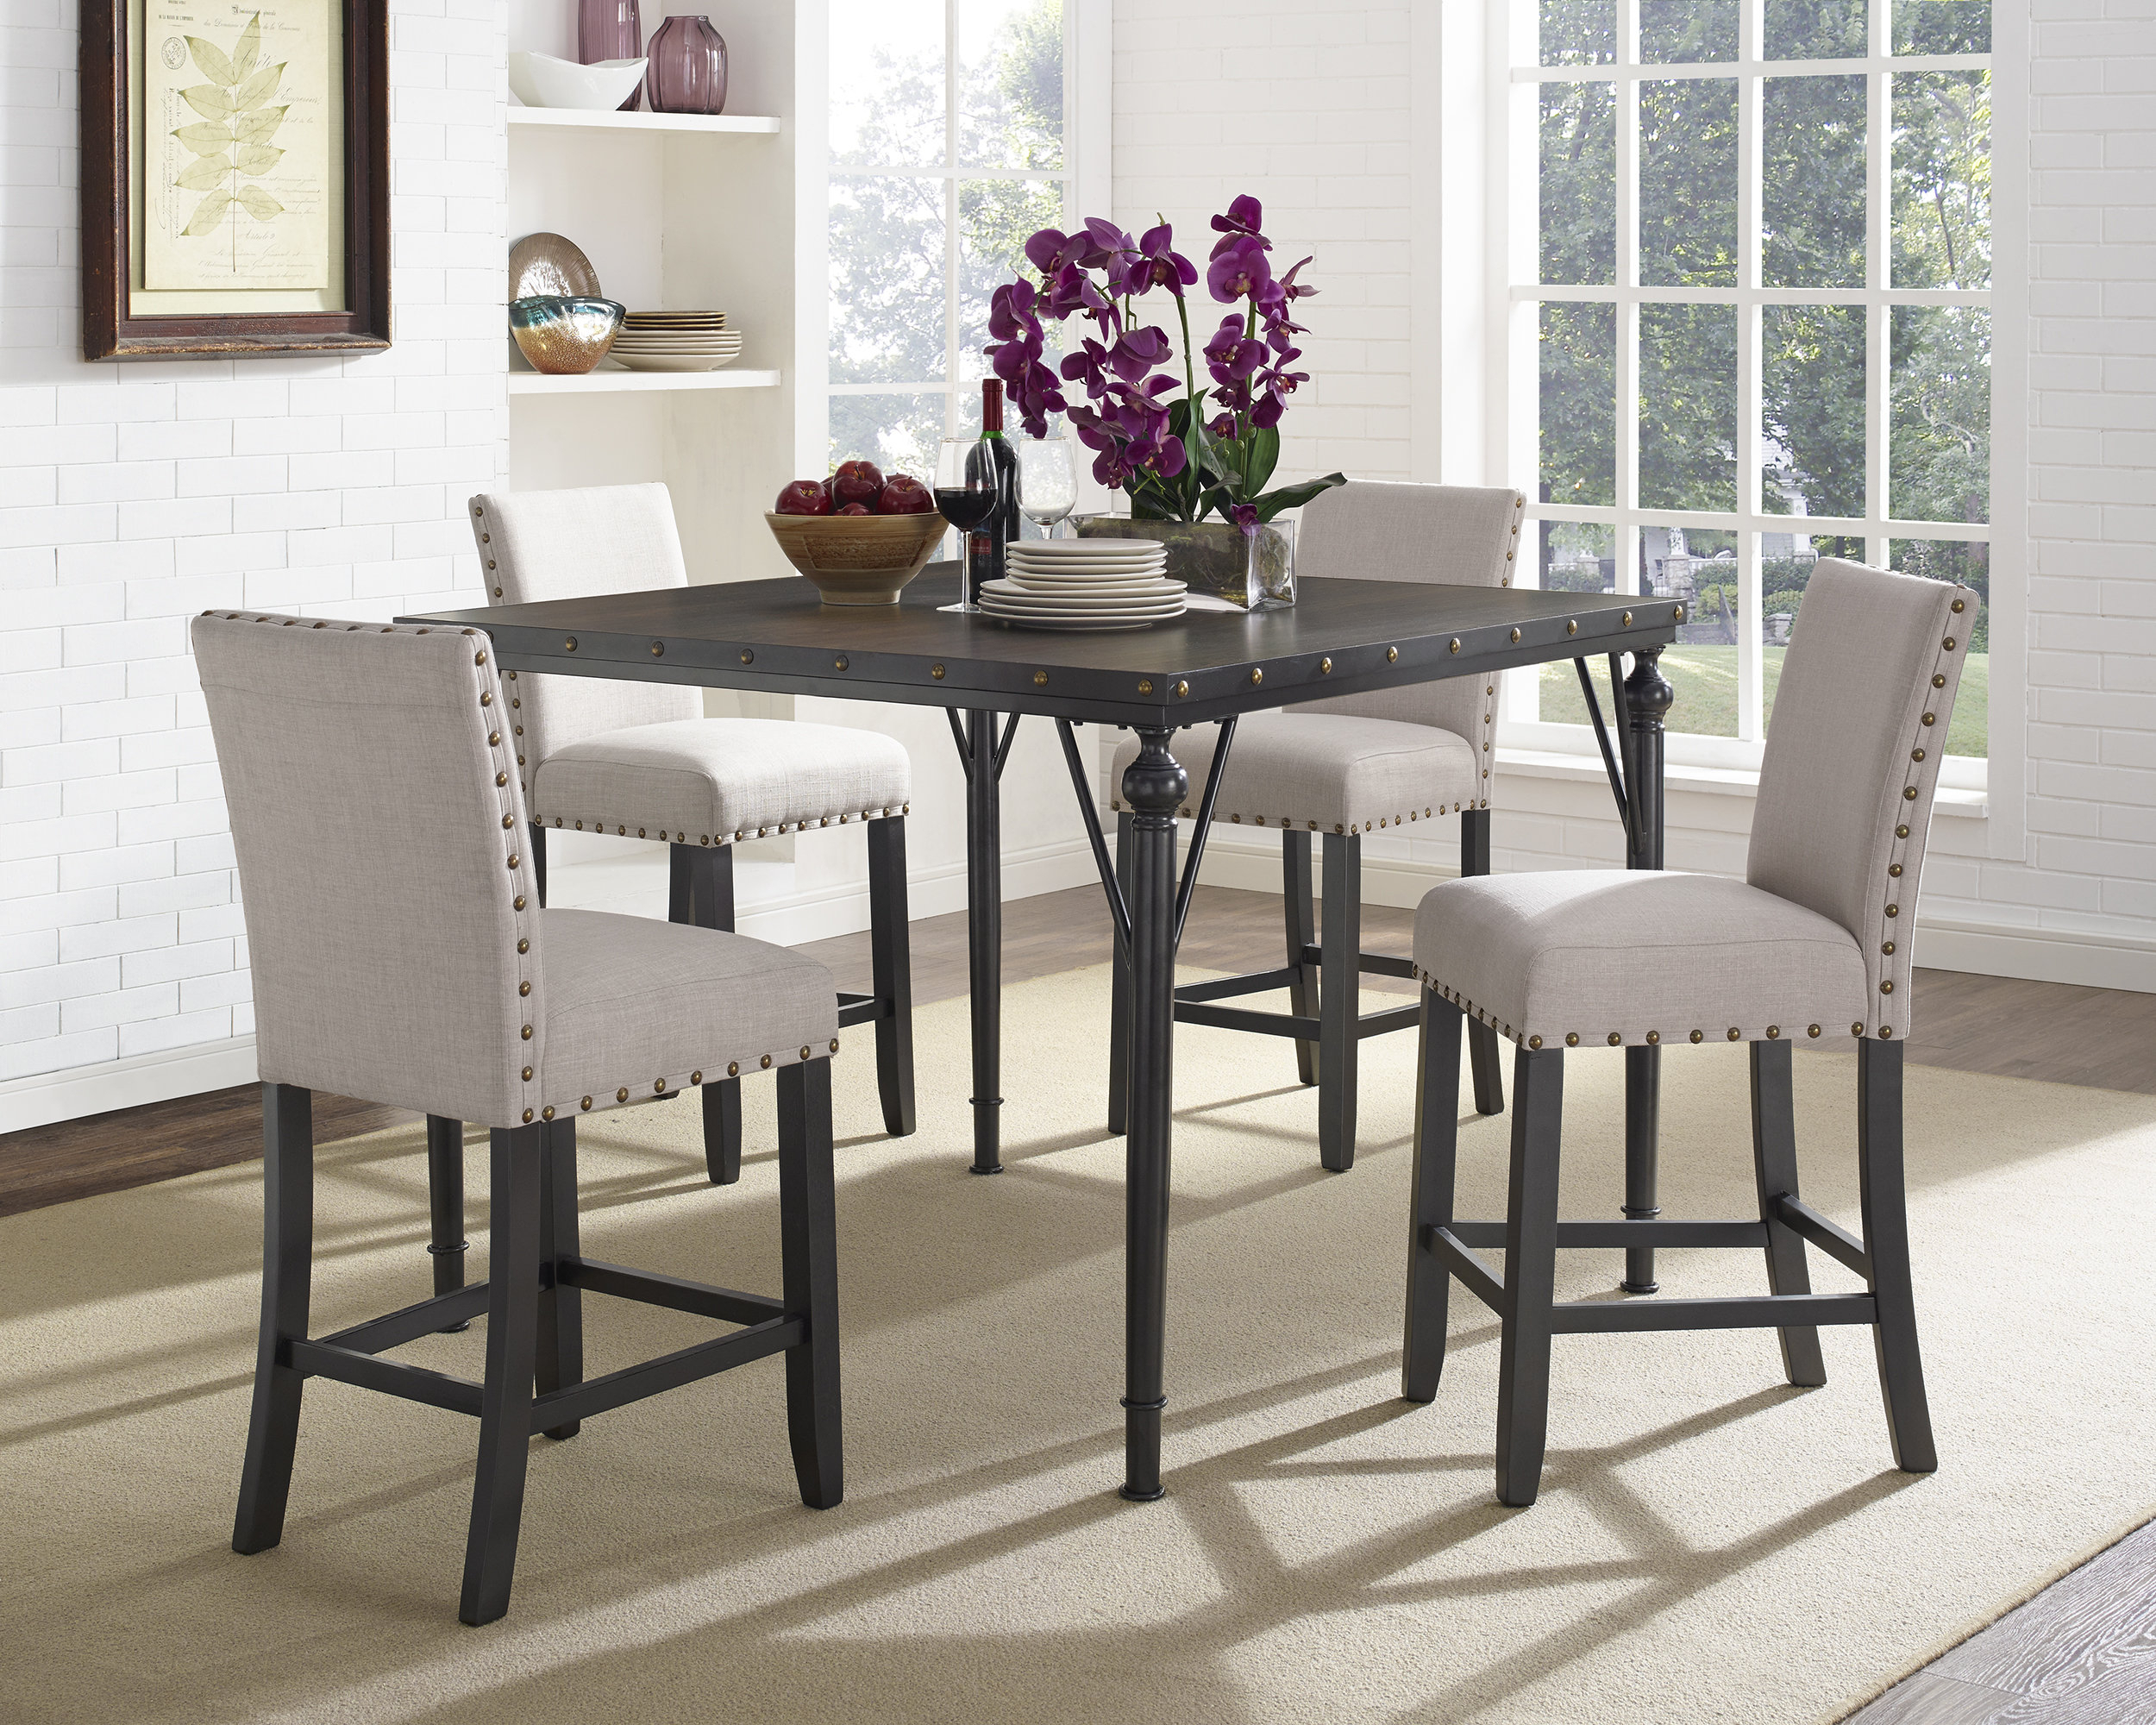 Greyleigh Haysi Wood Counter Height 5 Piece Dining Set With Fabric Nailhead Chairs Pertaining To Most Recent Pattonsburg 5 Piece Dining Sets (View 20 of 20)